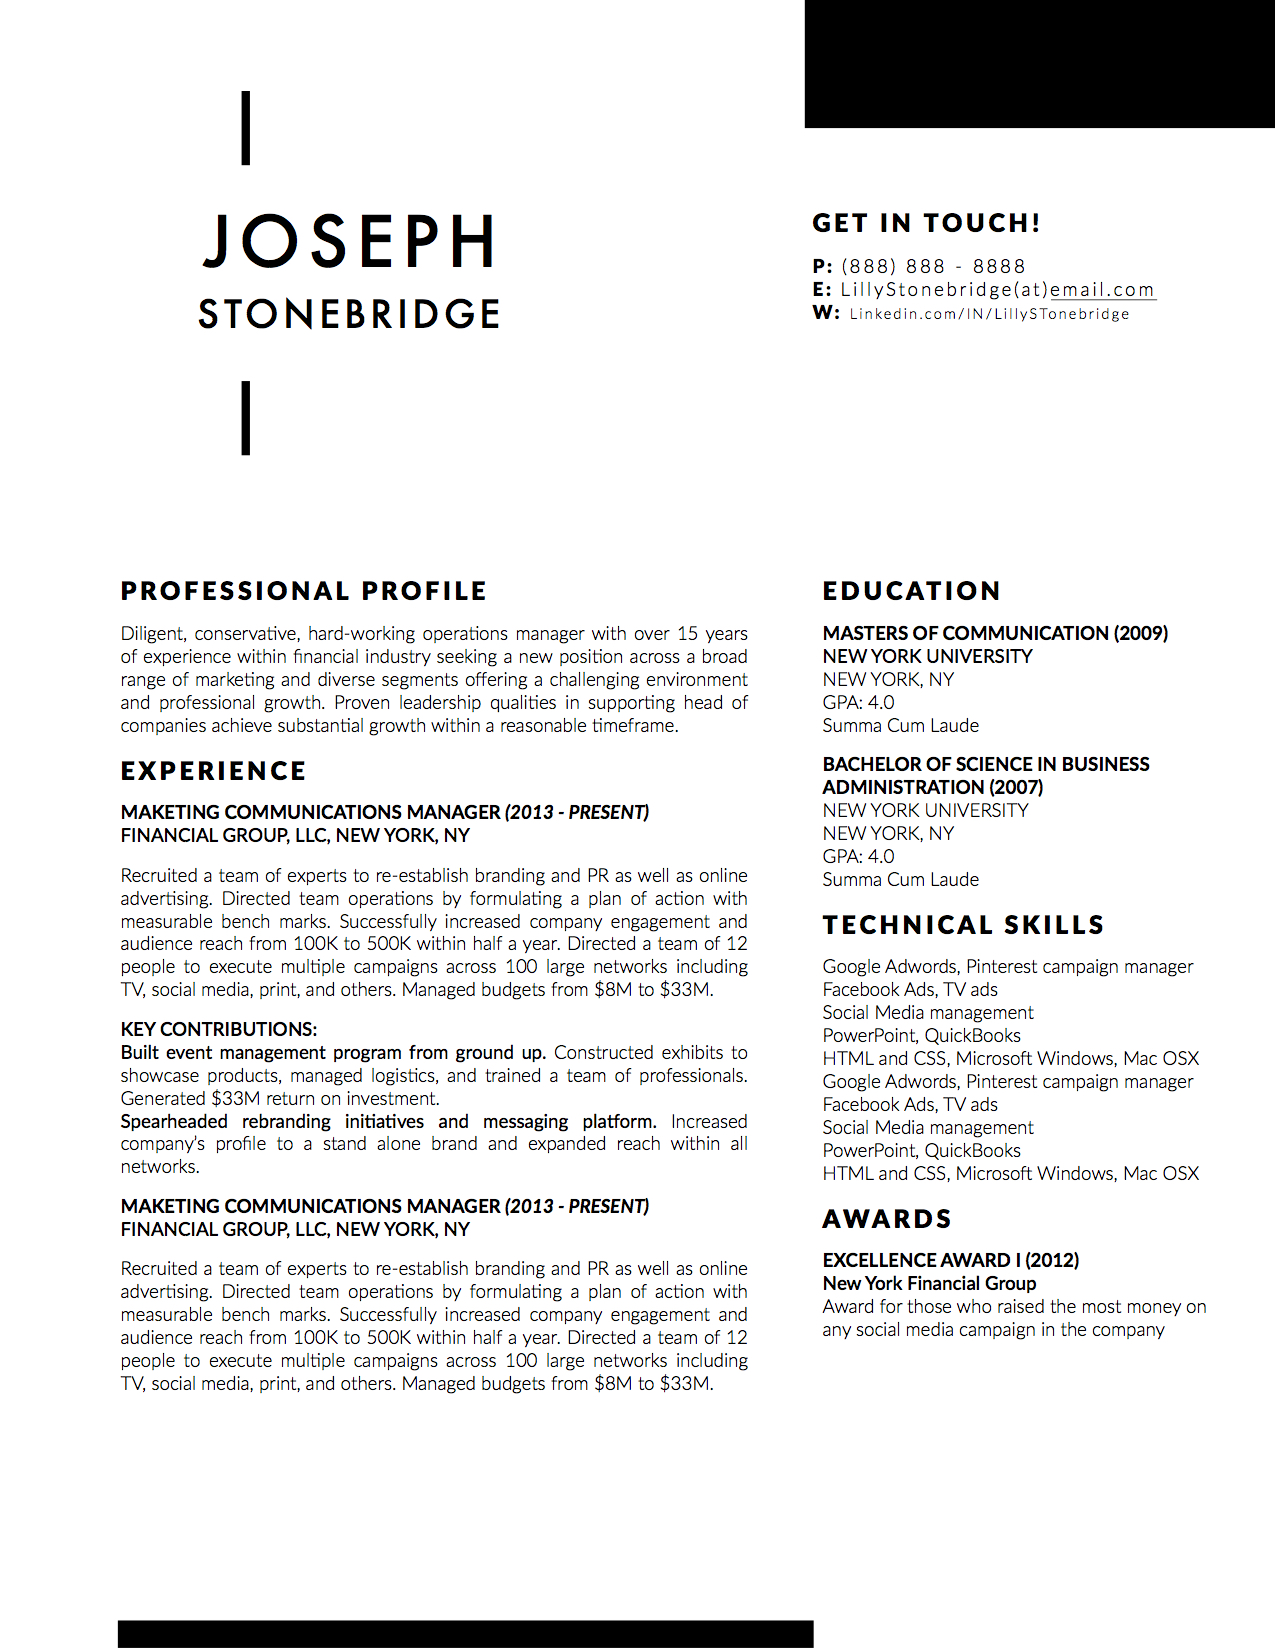 Joseph stonebridge resume template stand out shop joseph stonebridge downloadable resume cover template and cover letter template for microsoft word and apple spiritdancerdesigns